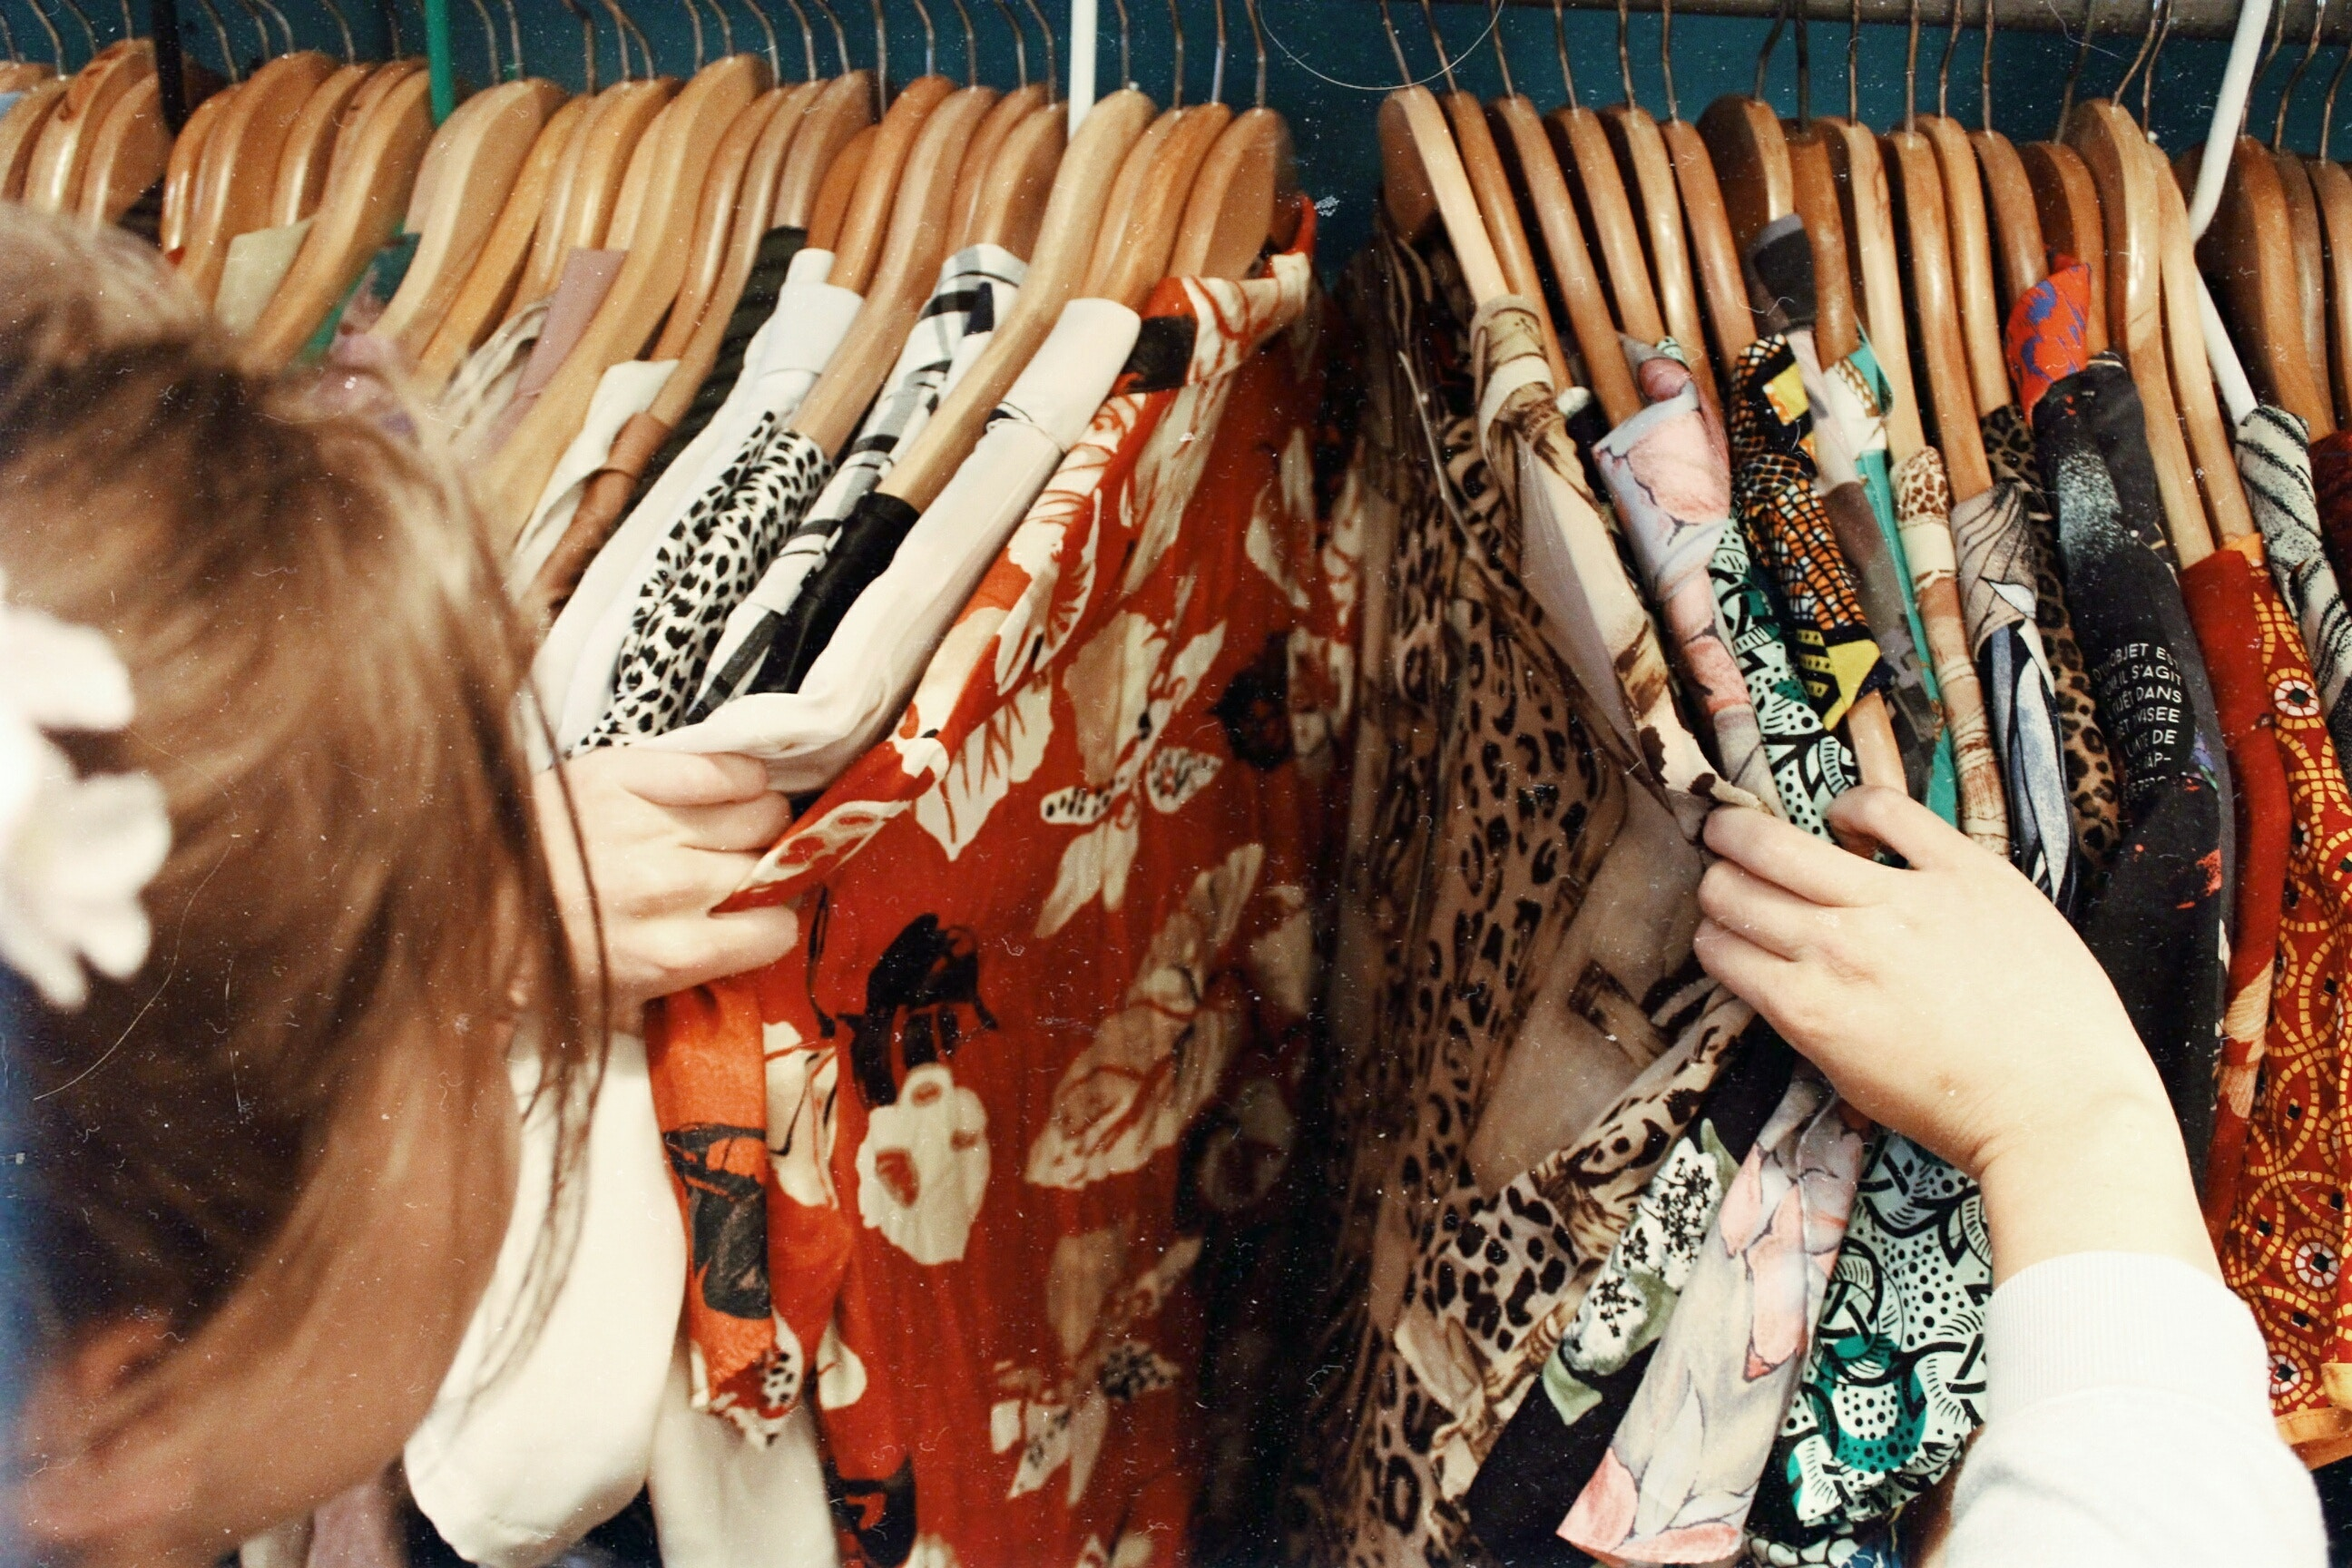 Woman shopping and looking through a rack of clothes.